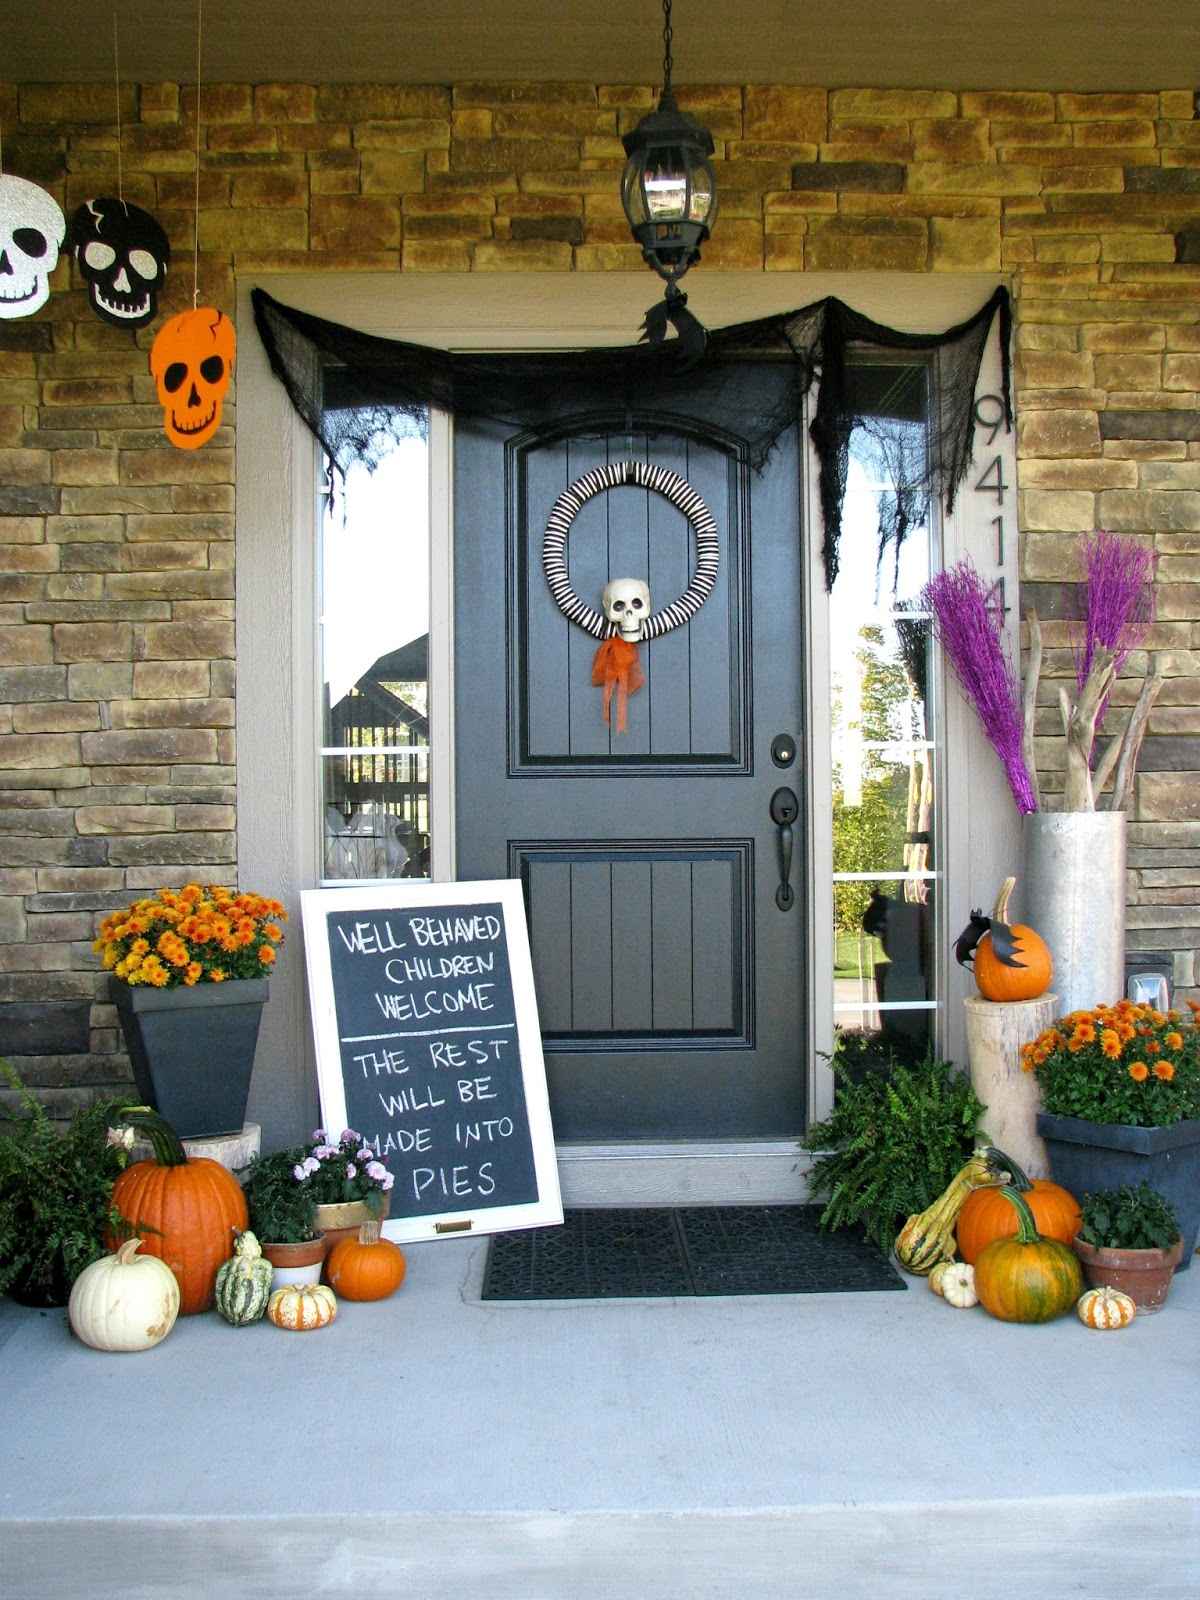 halloween decorations for porch - Small Halloween Decorations